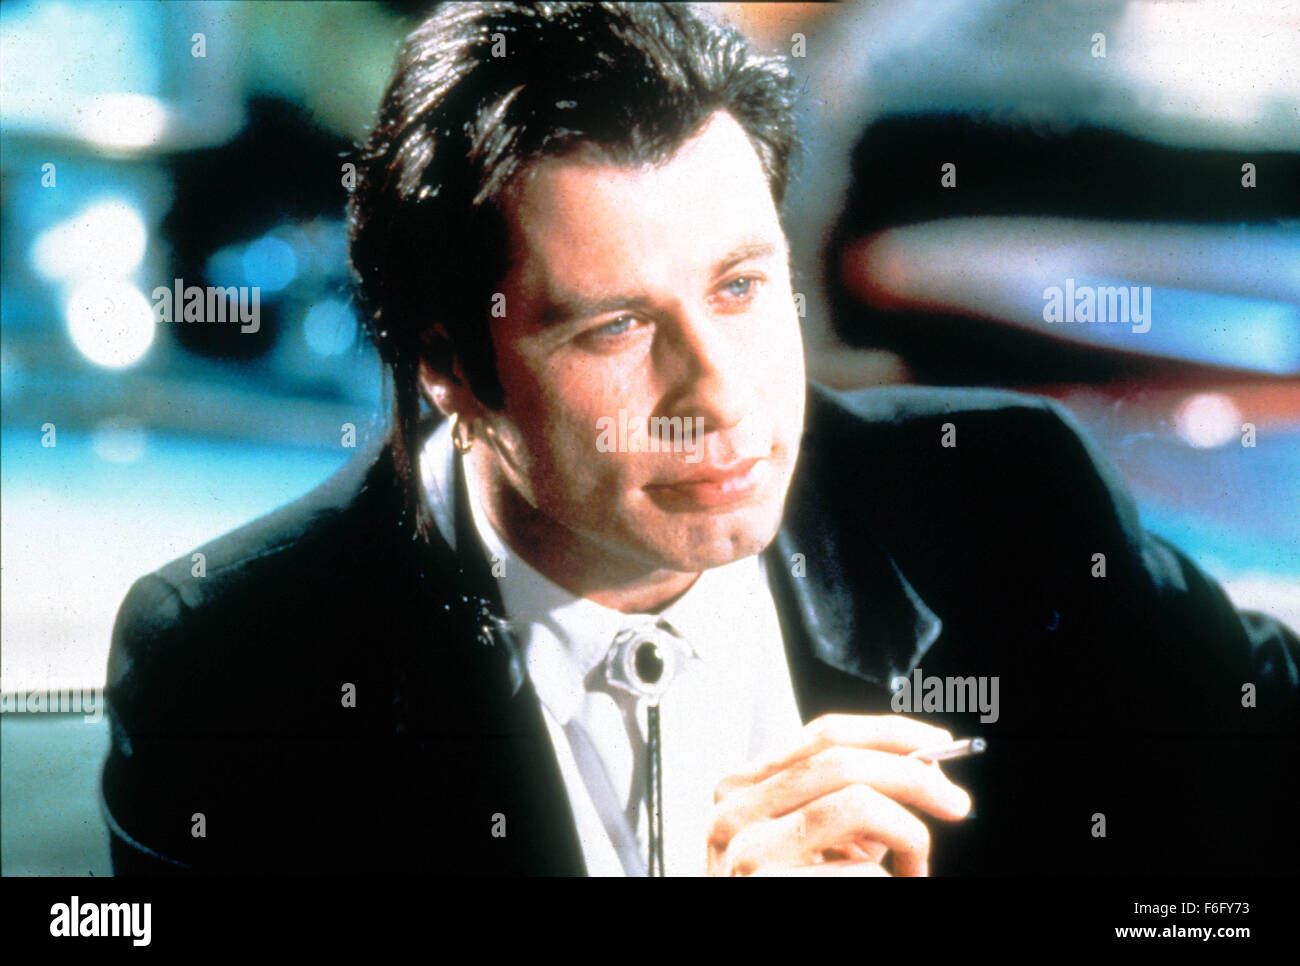 20X27 CM PHOTO PULP FICTION P1 JOHN TRAVOLTA